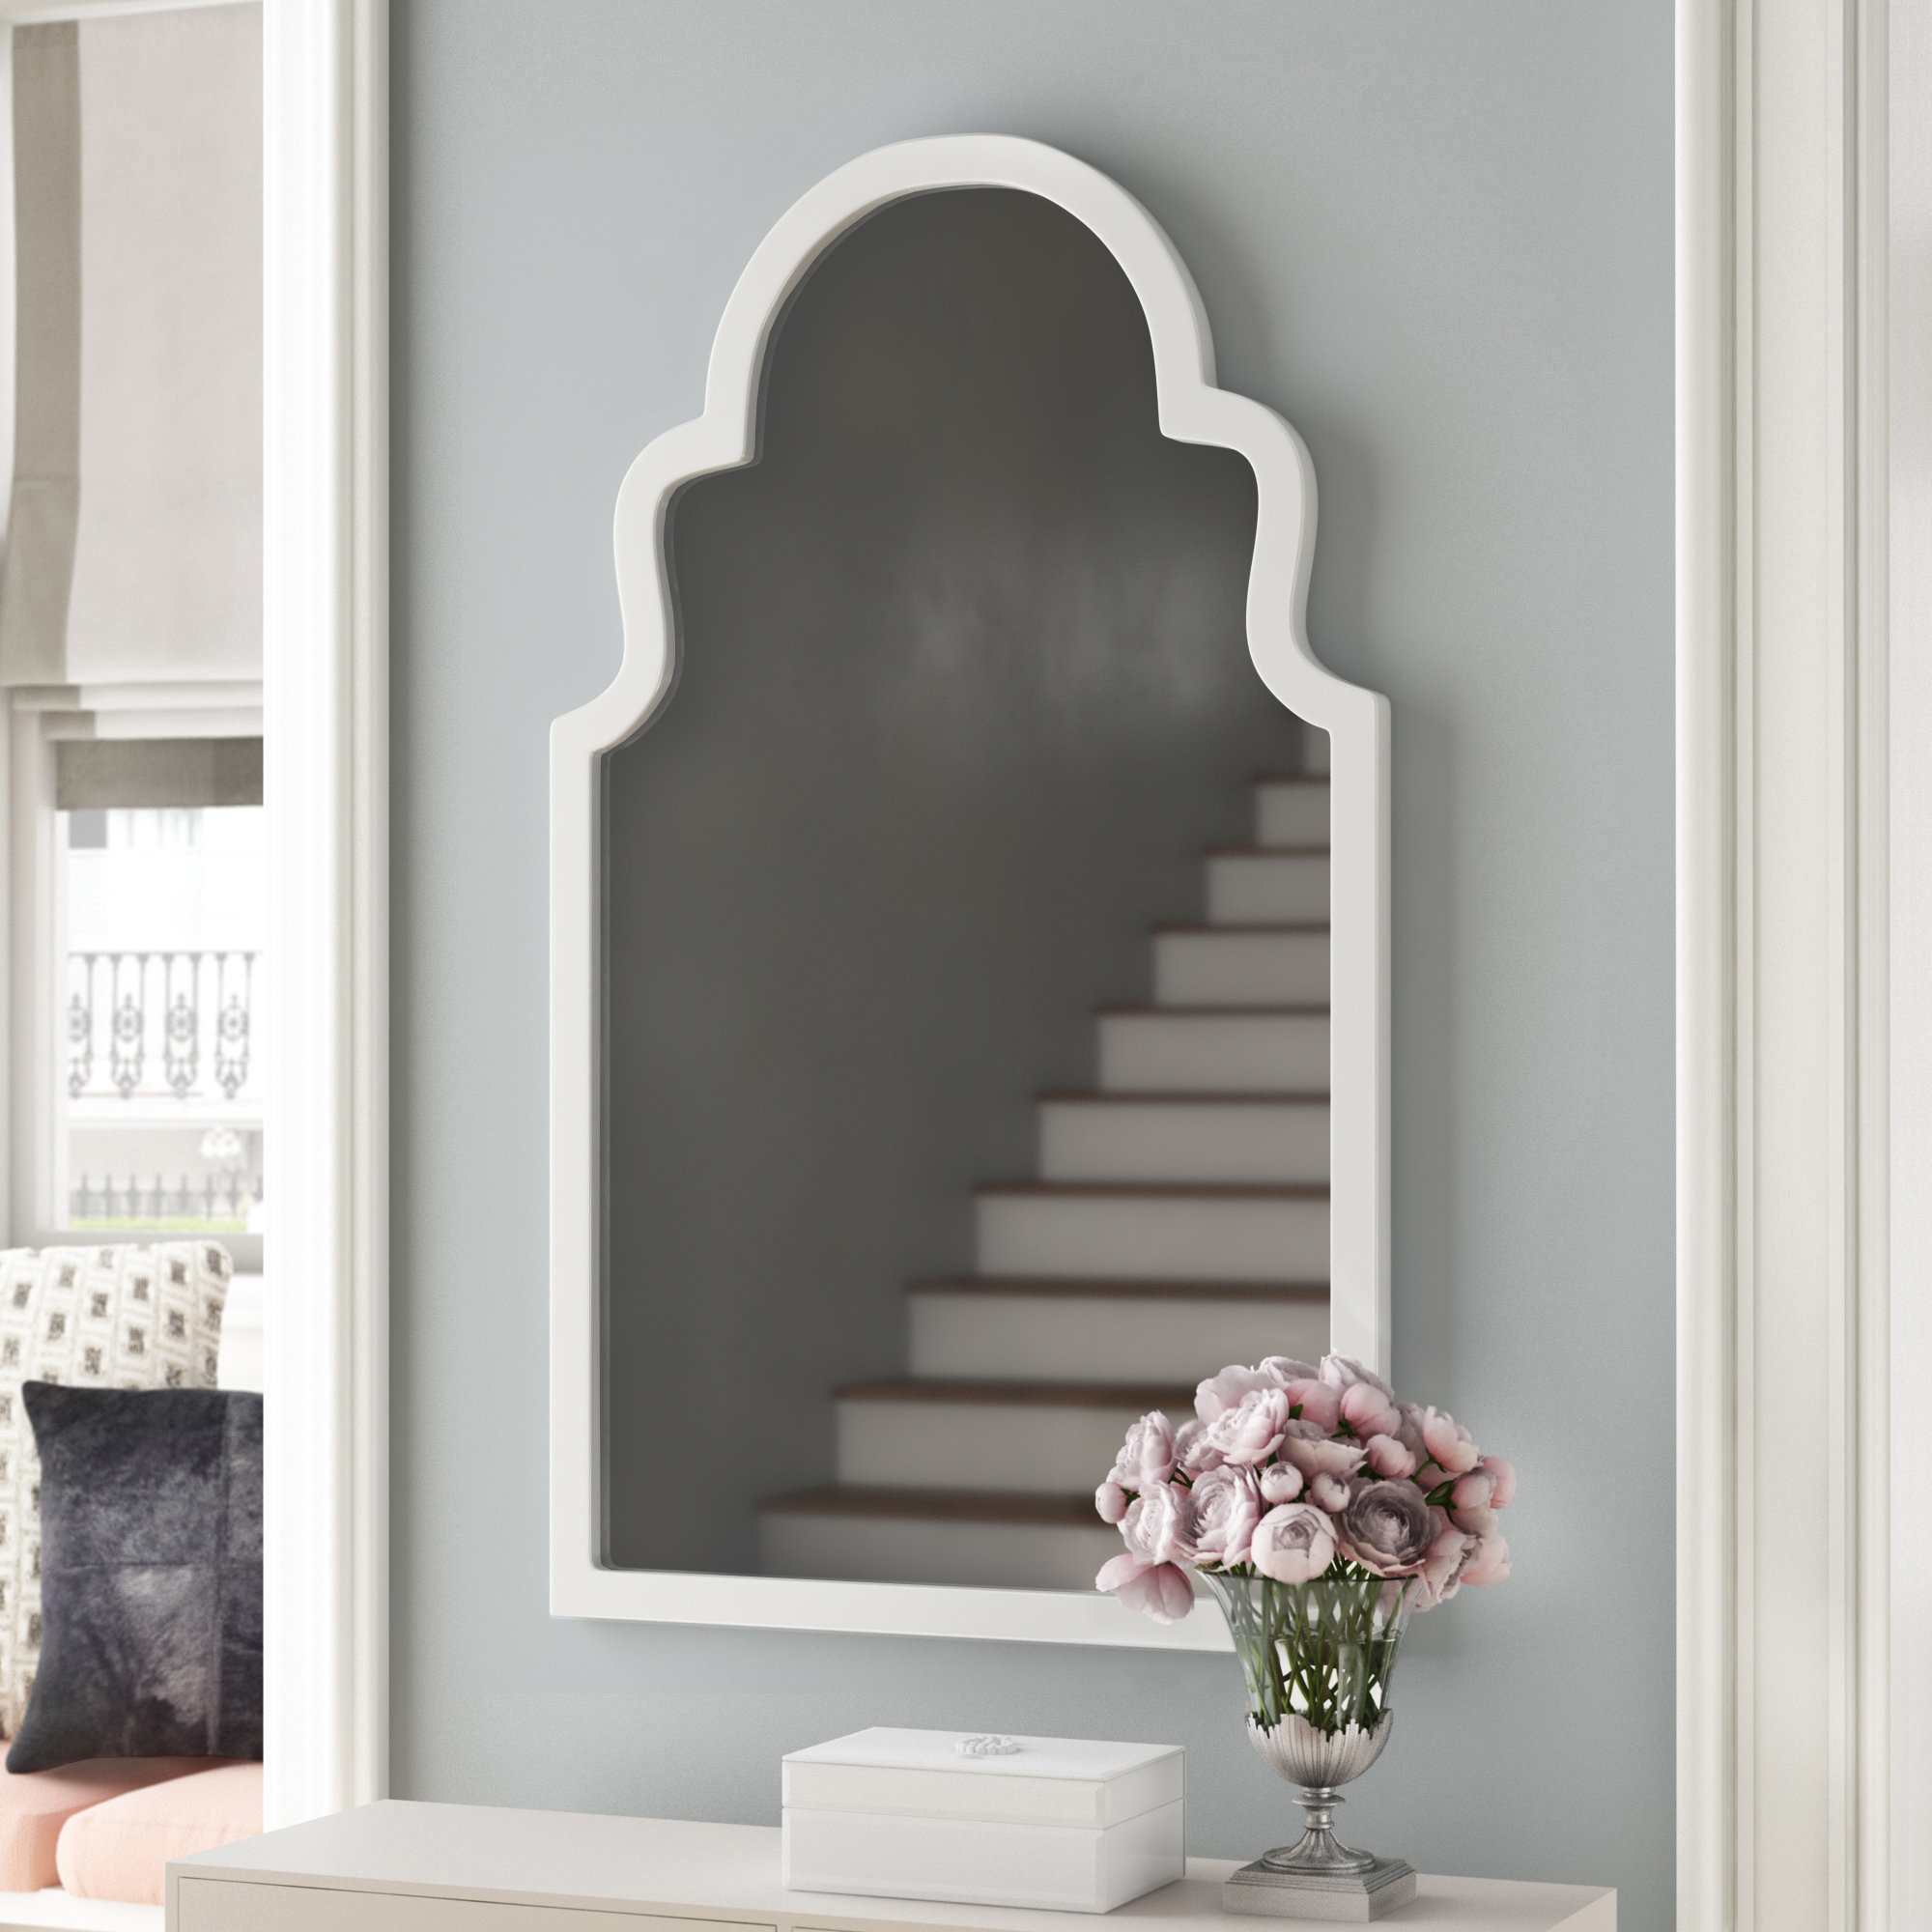 Arch Vertical Wall Mirror Pertaining To Most Recently Released Arch Vertical Wall Mirrors (View 1 of 20)